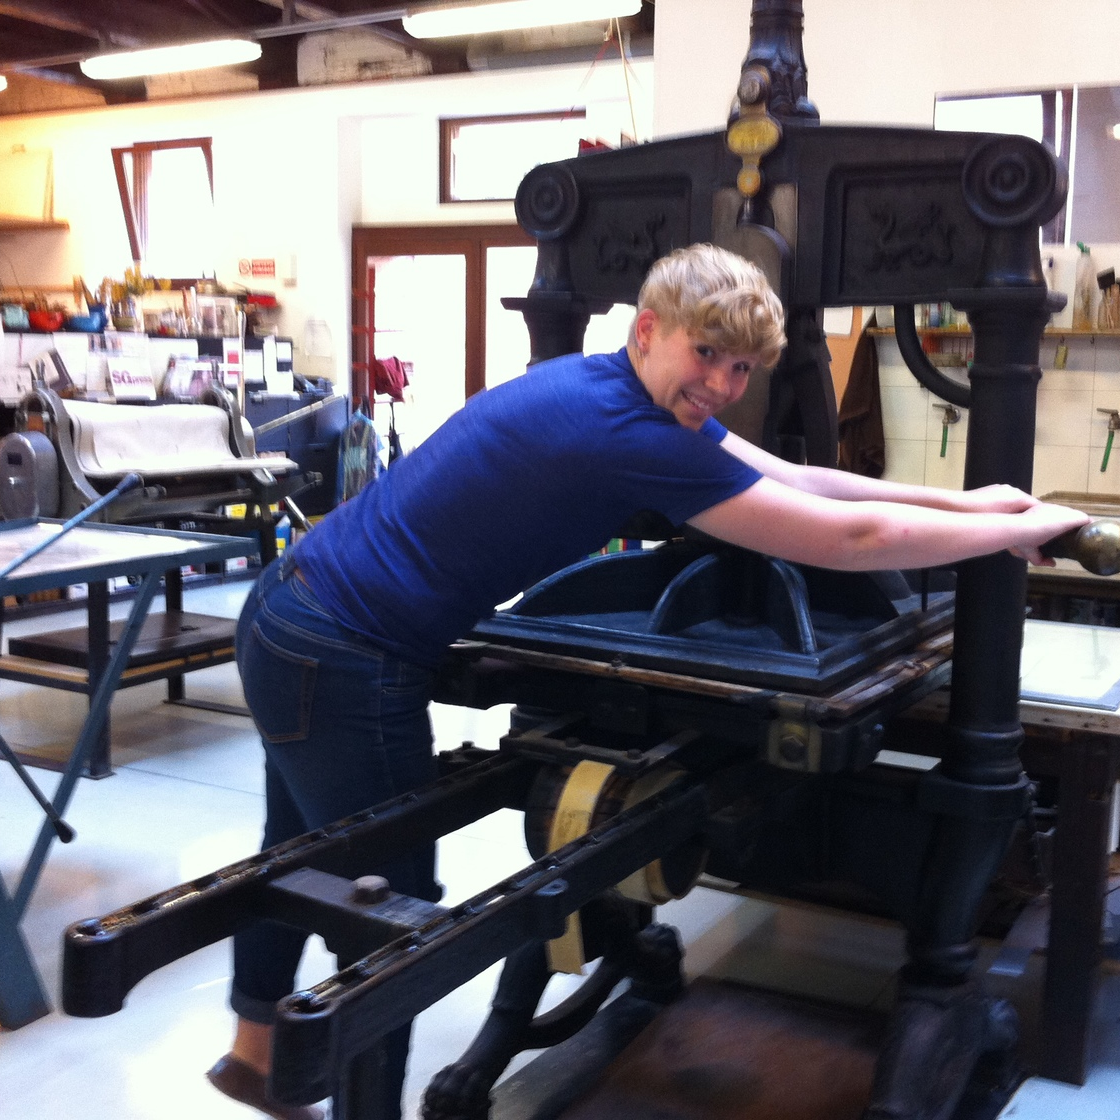 Diana Bowers (PiV '13) at work on the woodblock printing press at Scuola di Grafica (photo: Joseph Kopta).